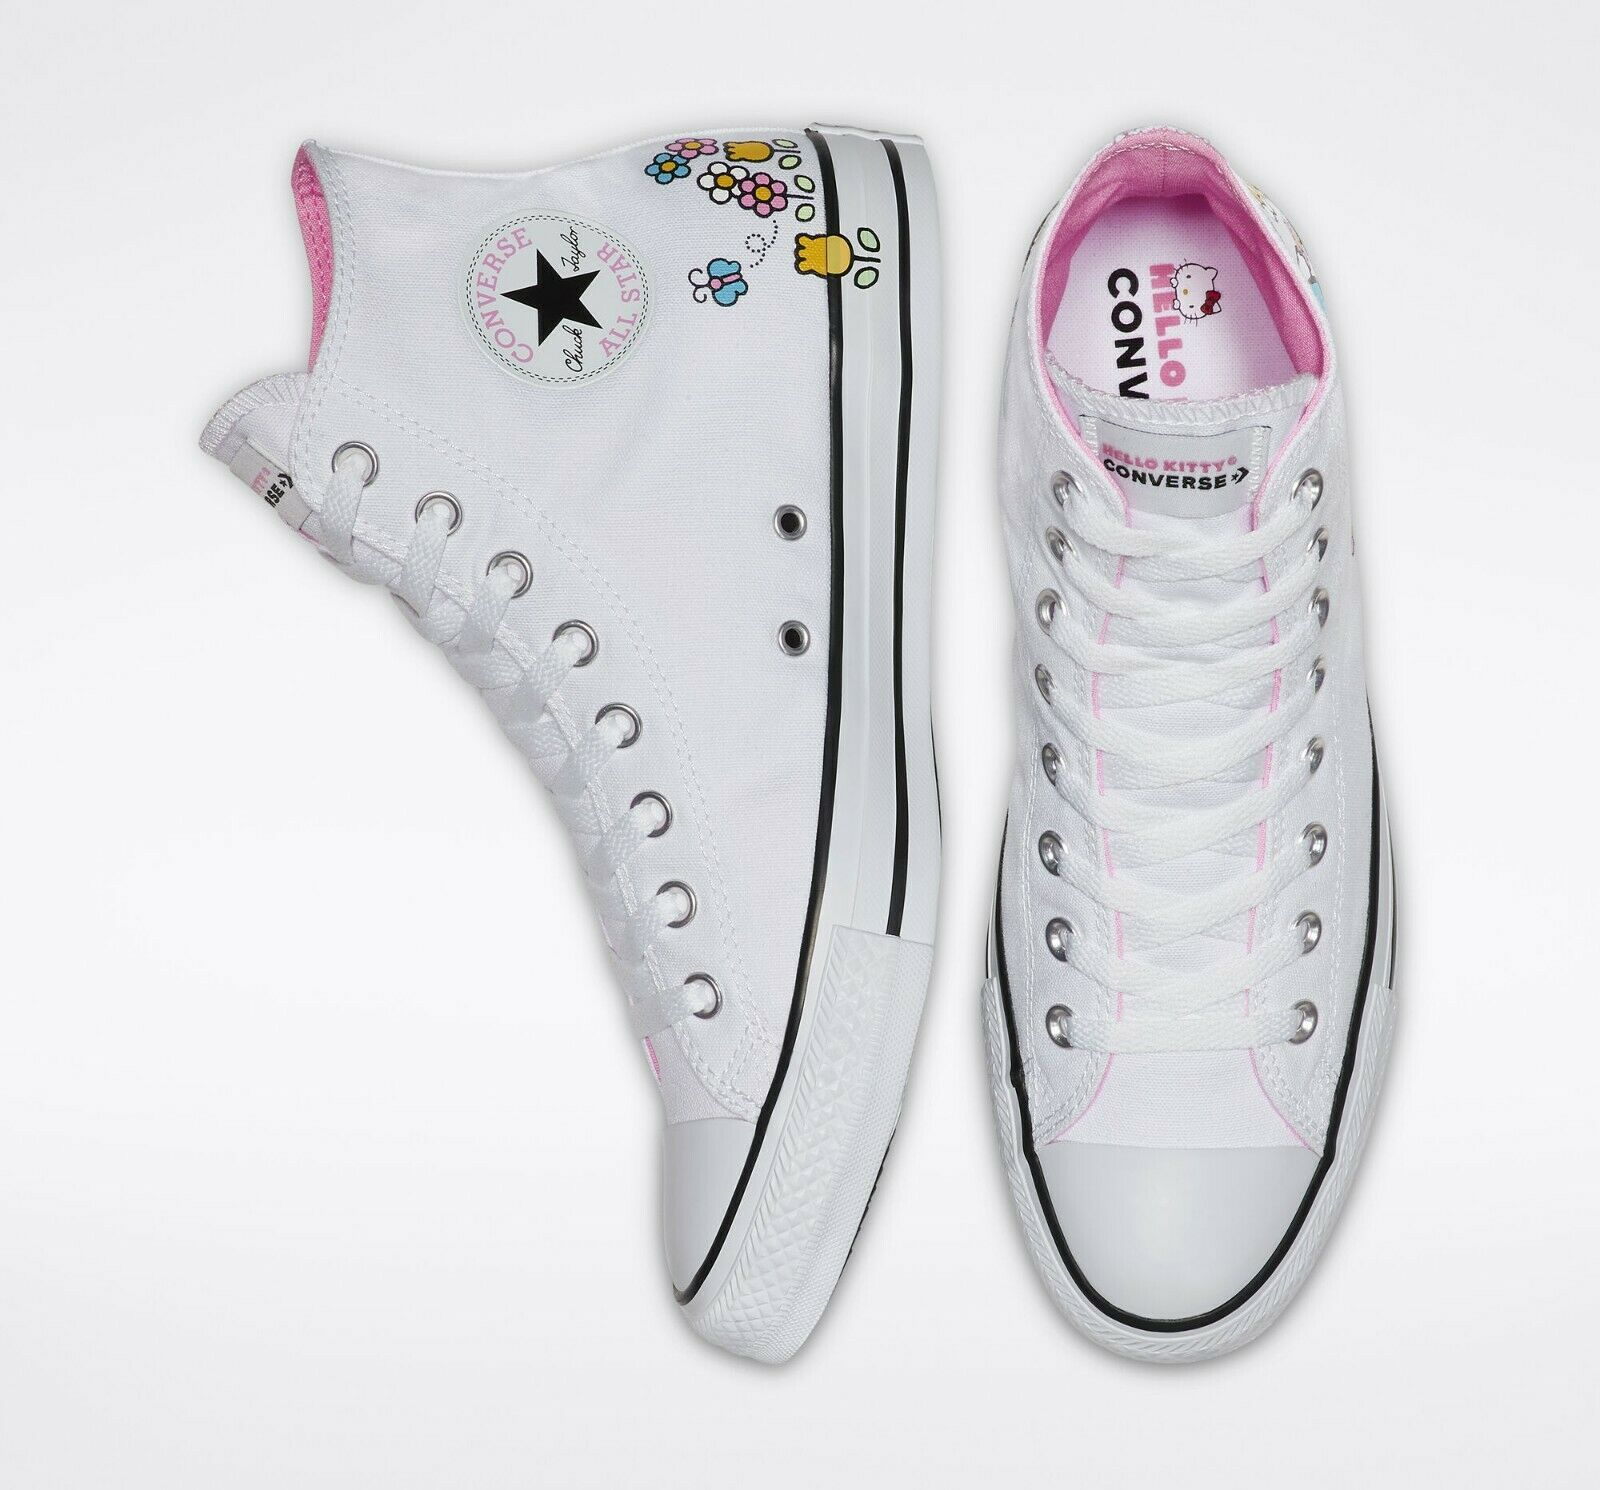 Converse x Hello Kitty Chuck Taylor All Star High Top, 164629F Multi Sizes White image 7